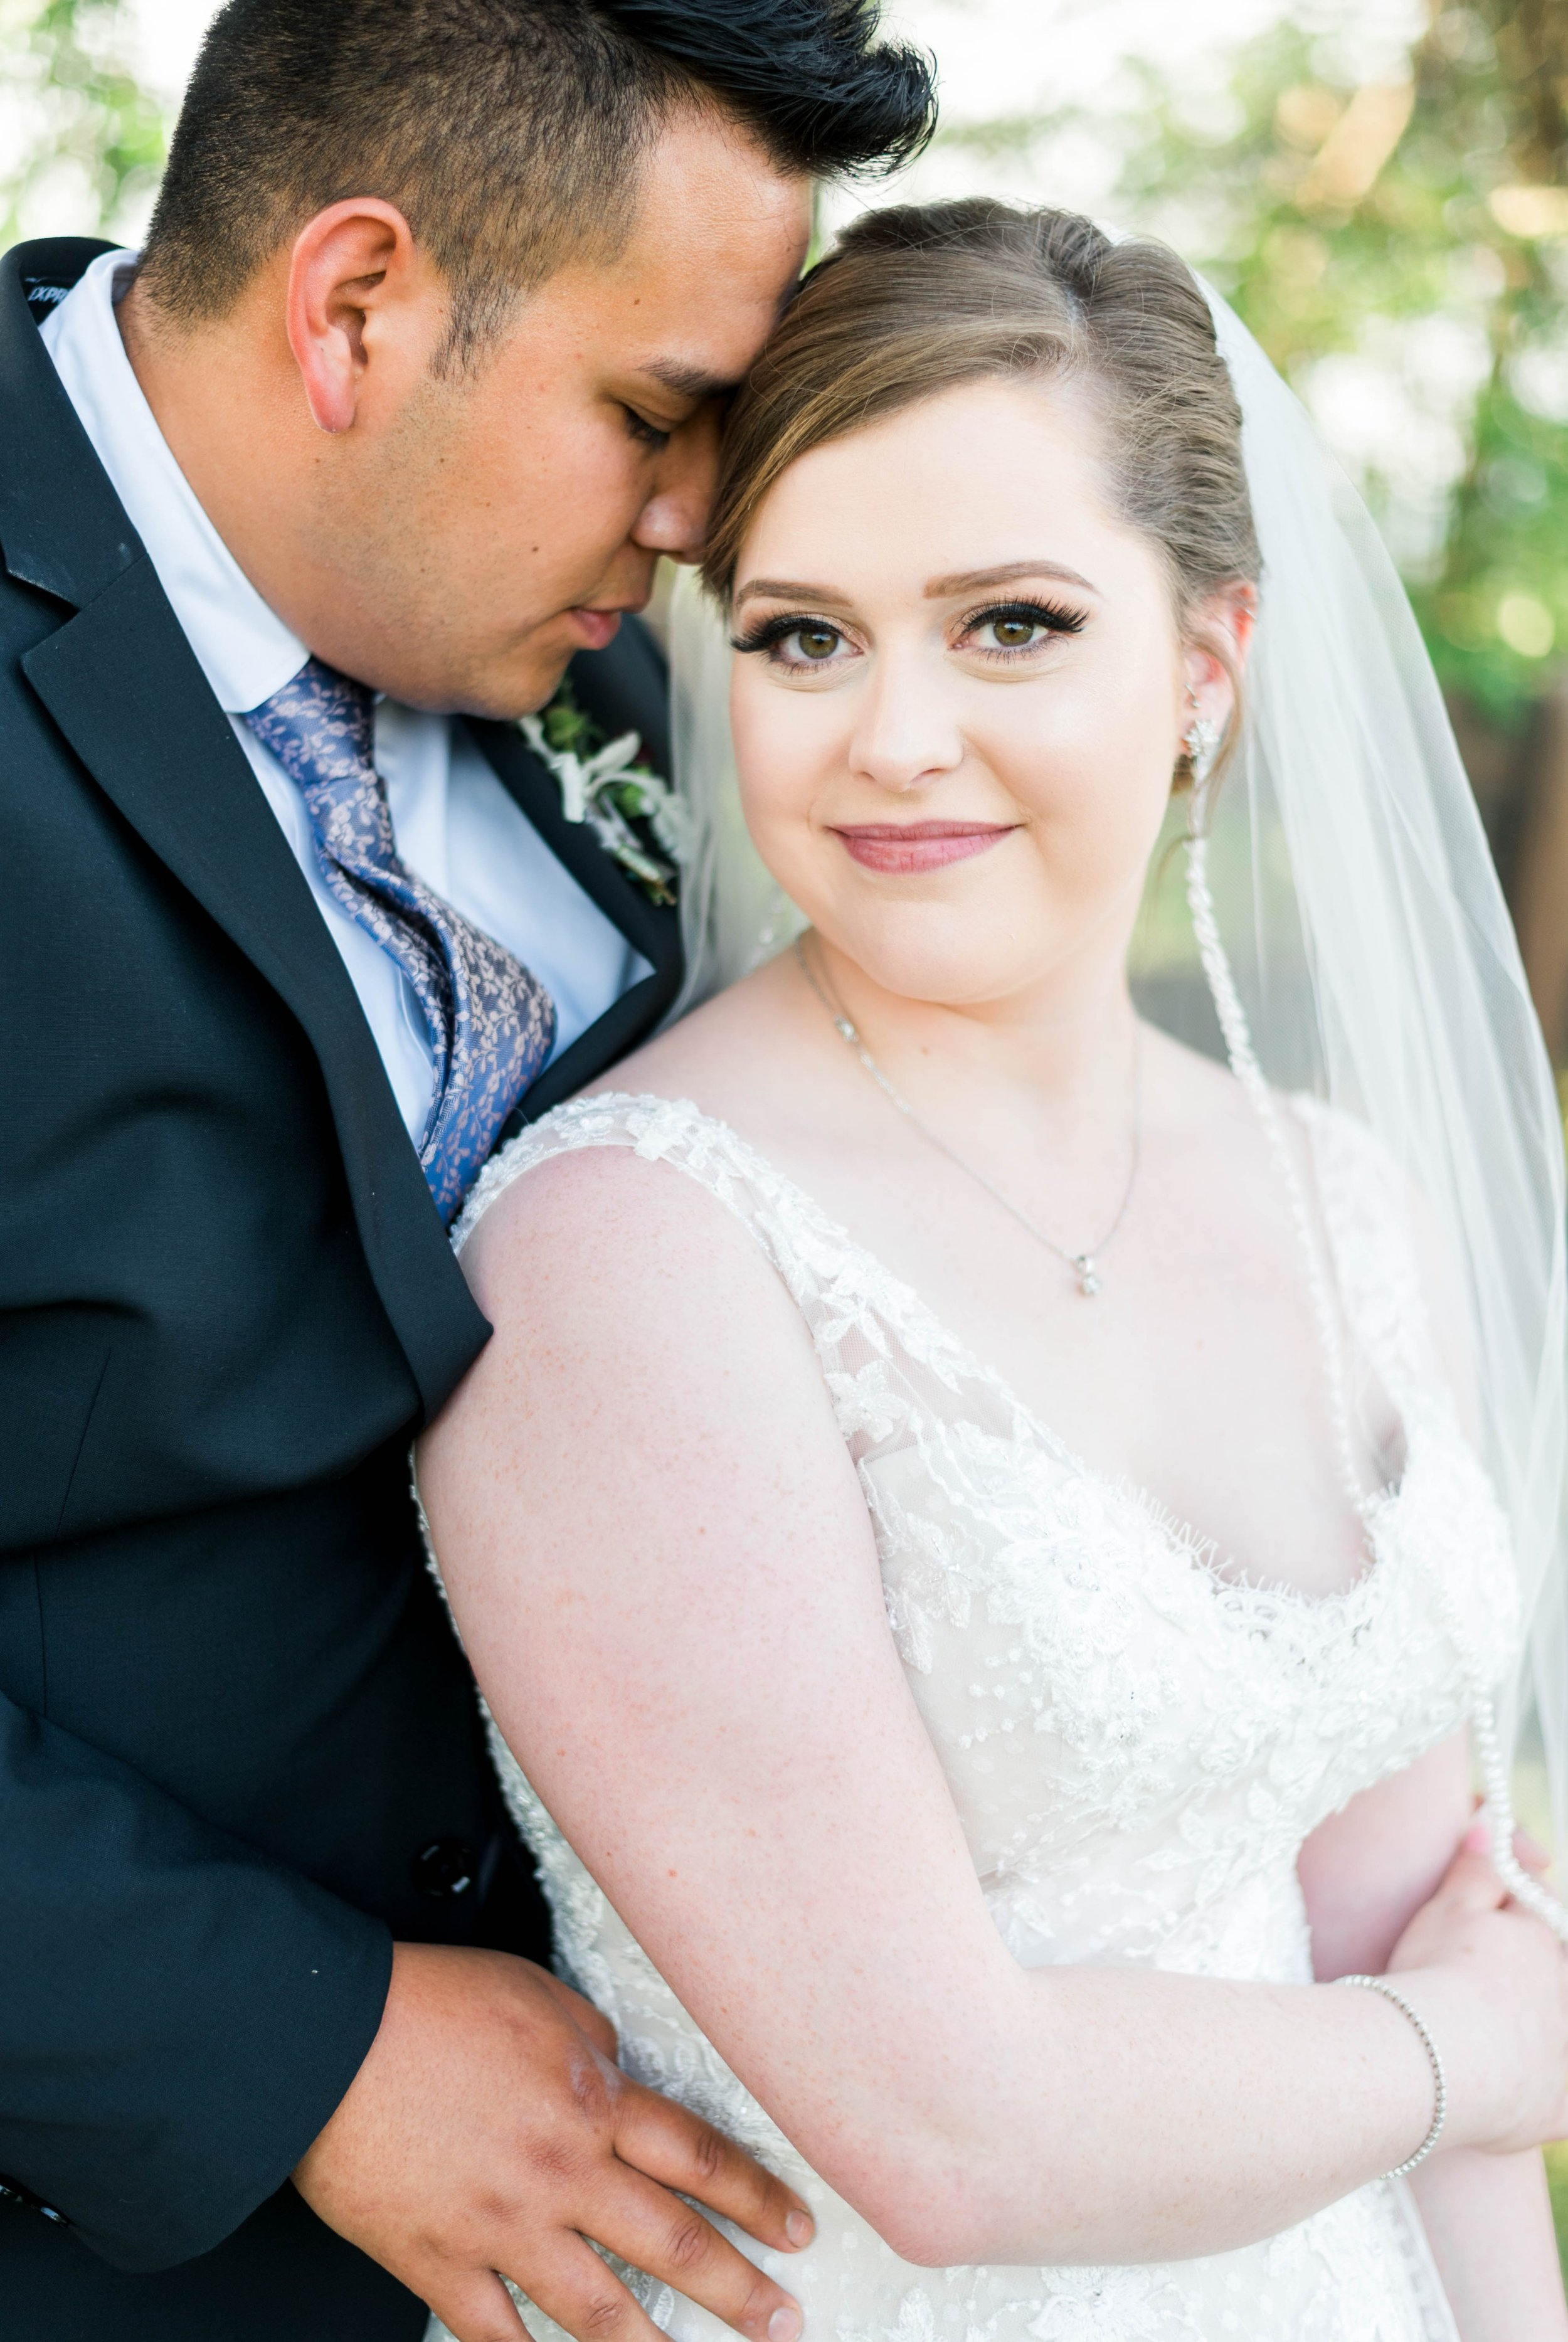 Jillian+Abi_OakridgeEstate_Wedding_VirginiaWeddingPhotographer_SpringWedding 35.jpg